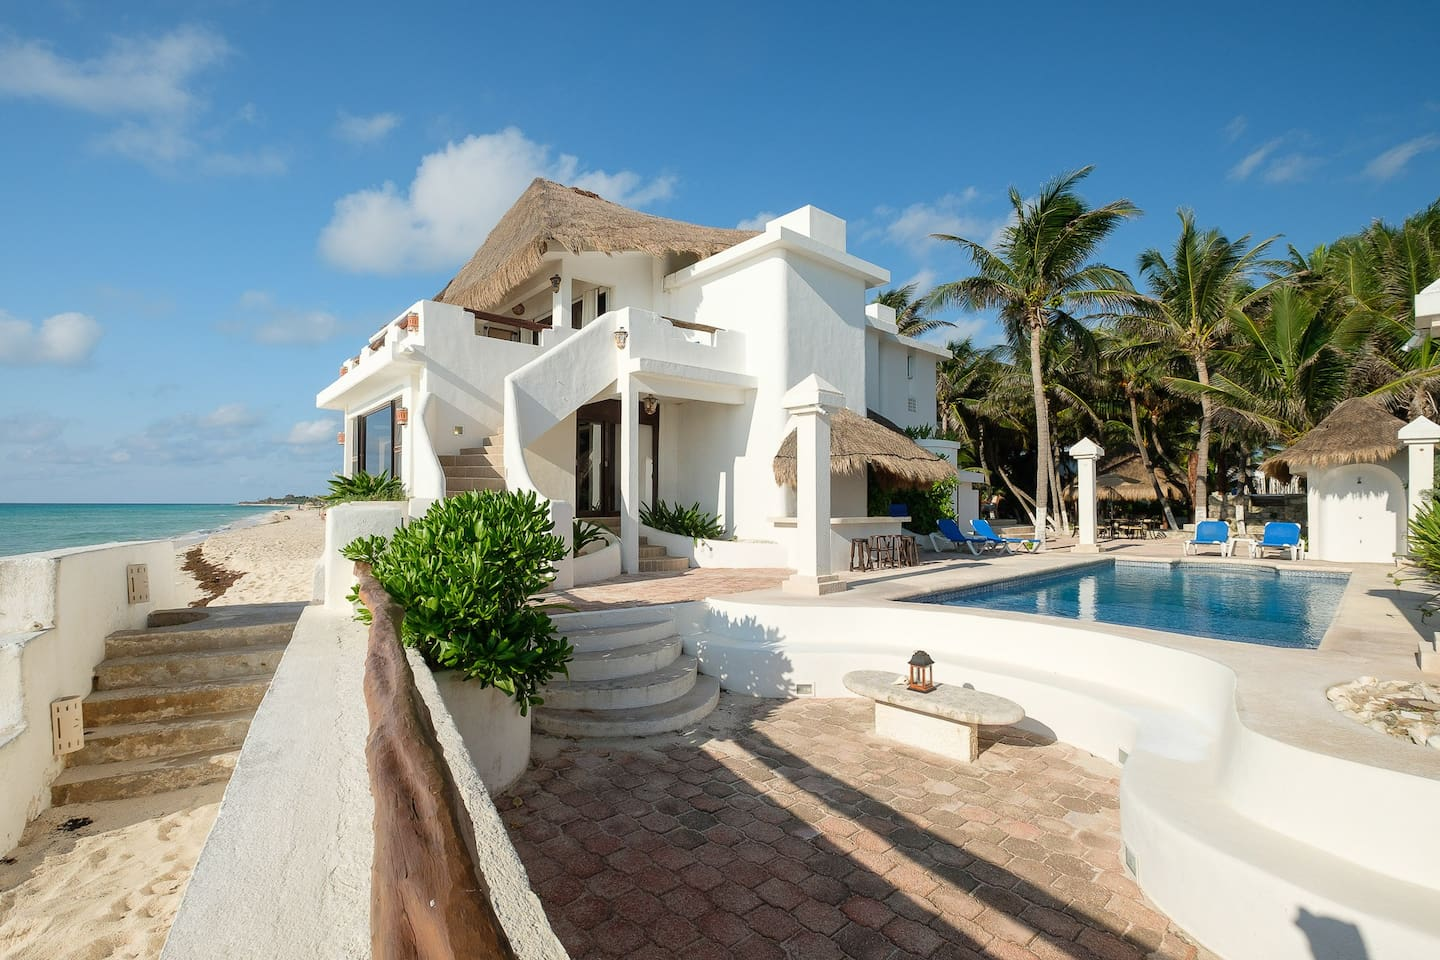 Welcome to Casa del Secreto, your private Caribbean getaway! Casa del Secreto can either be rented as a 3 or 6 bedroom home with private pool, jucuzzi and kids play area.